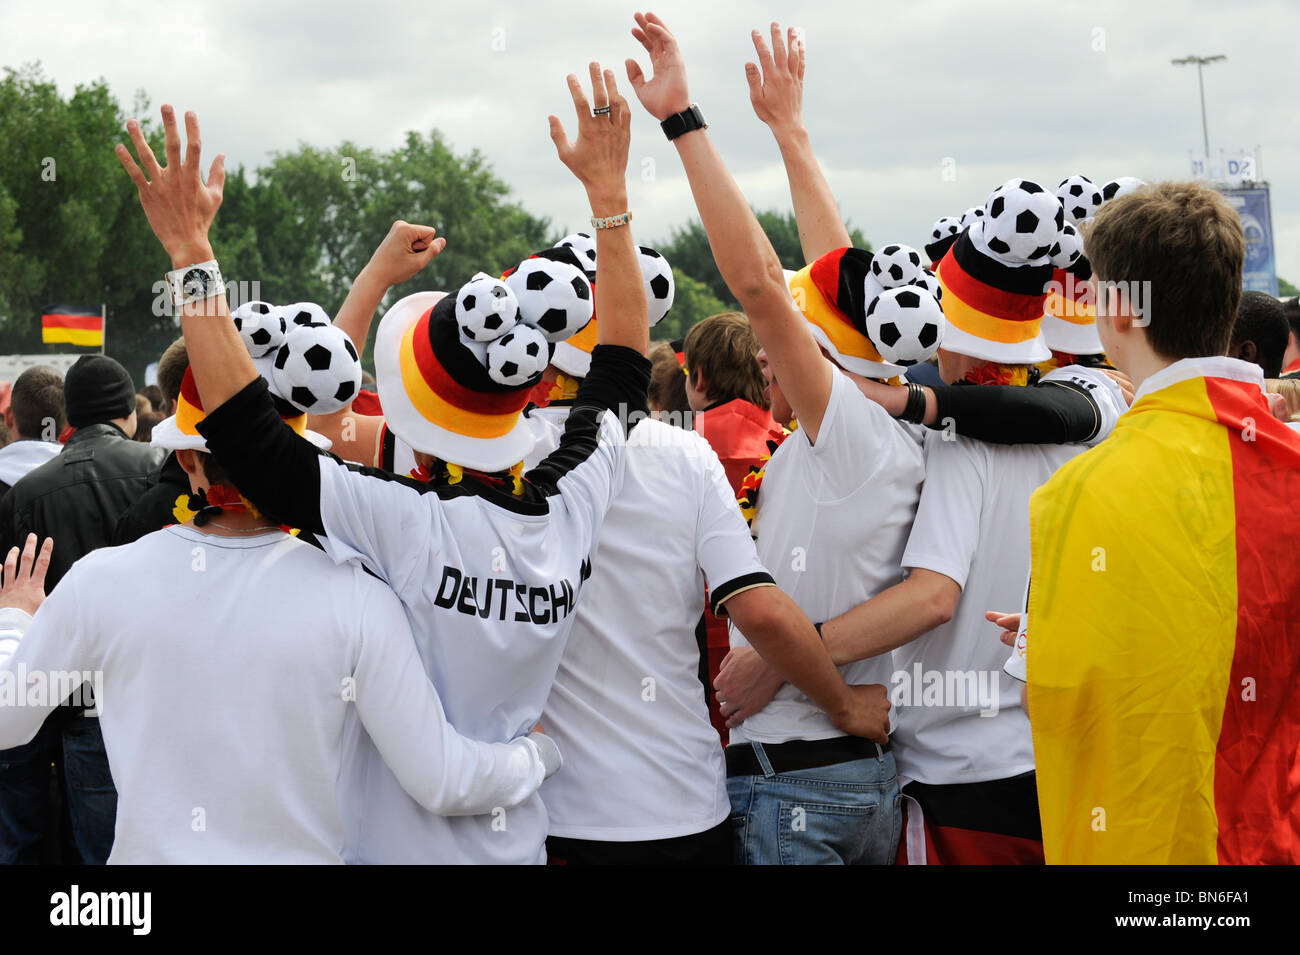 Germany Hamburg St. Pauli, german fans at public viewing of FIFA world cup 2010 in south africa, game Germany - - Stock Image